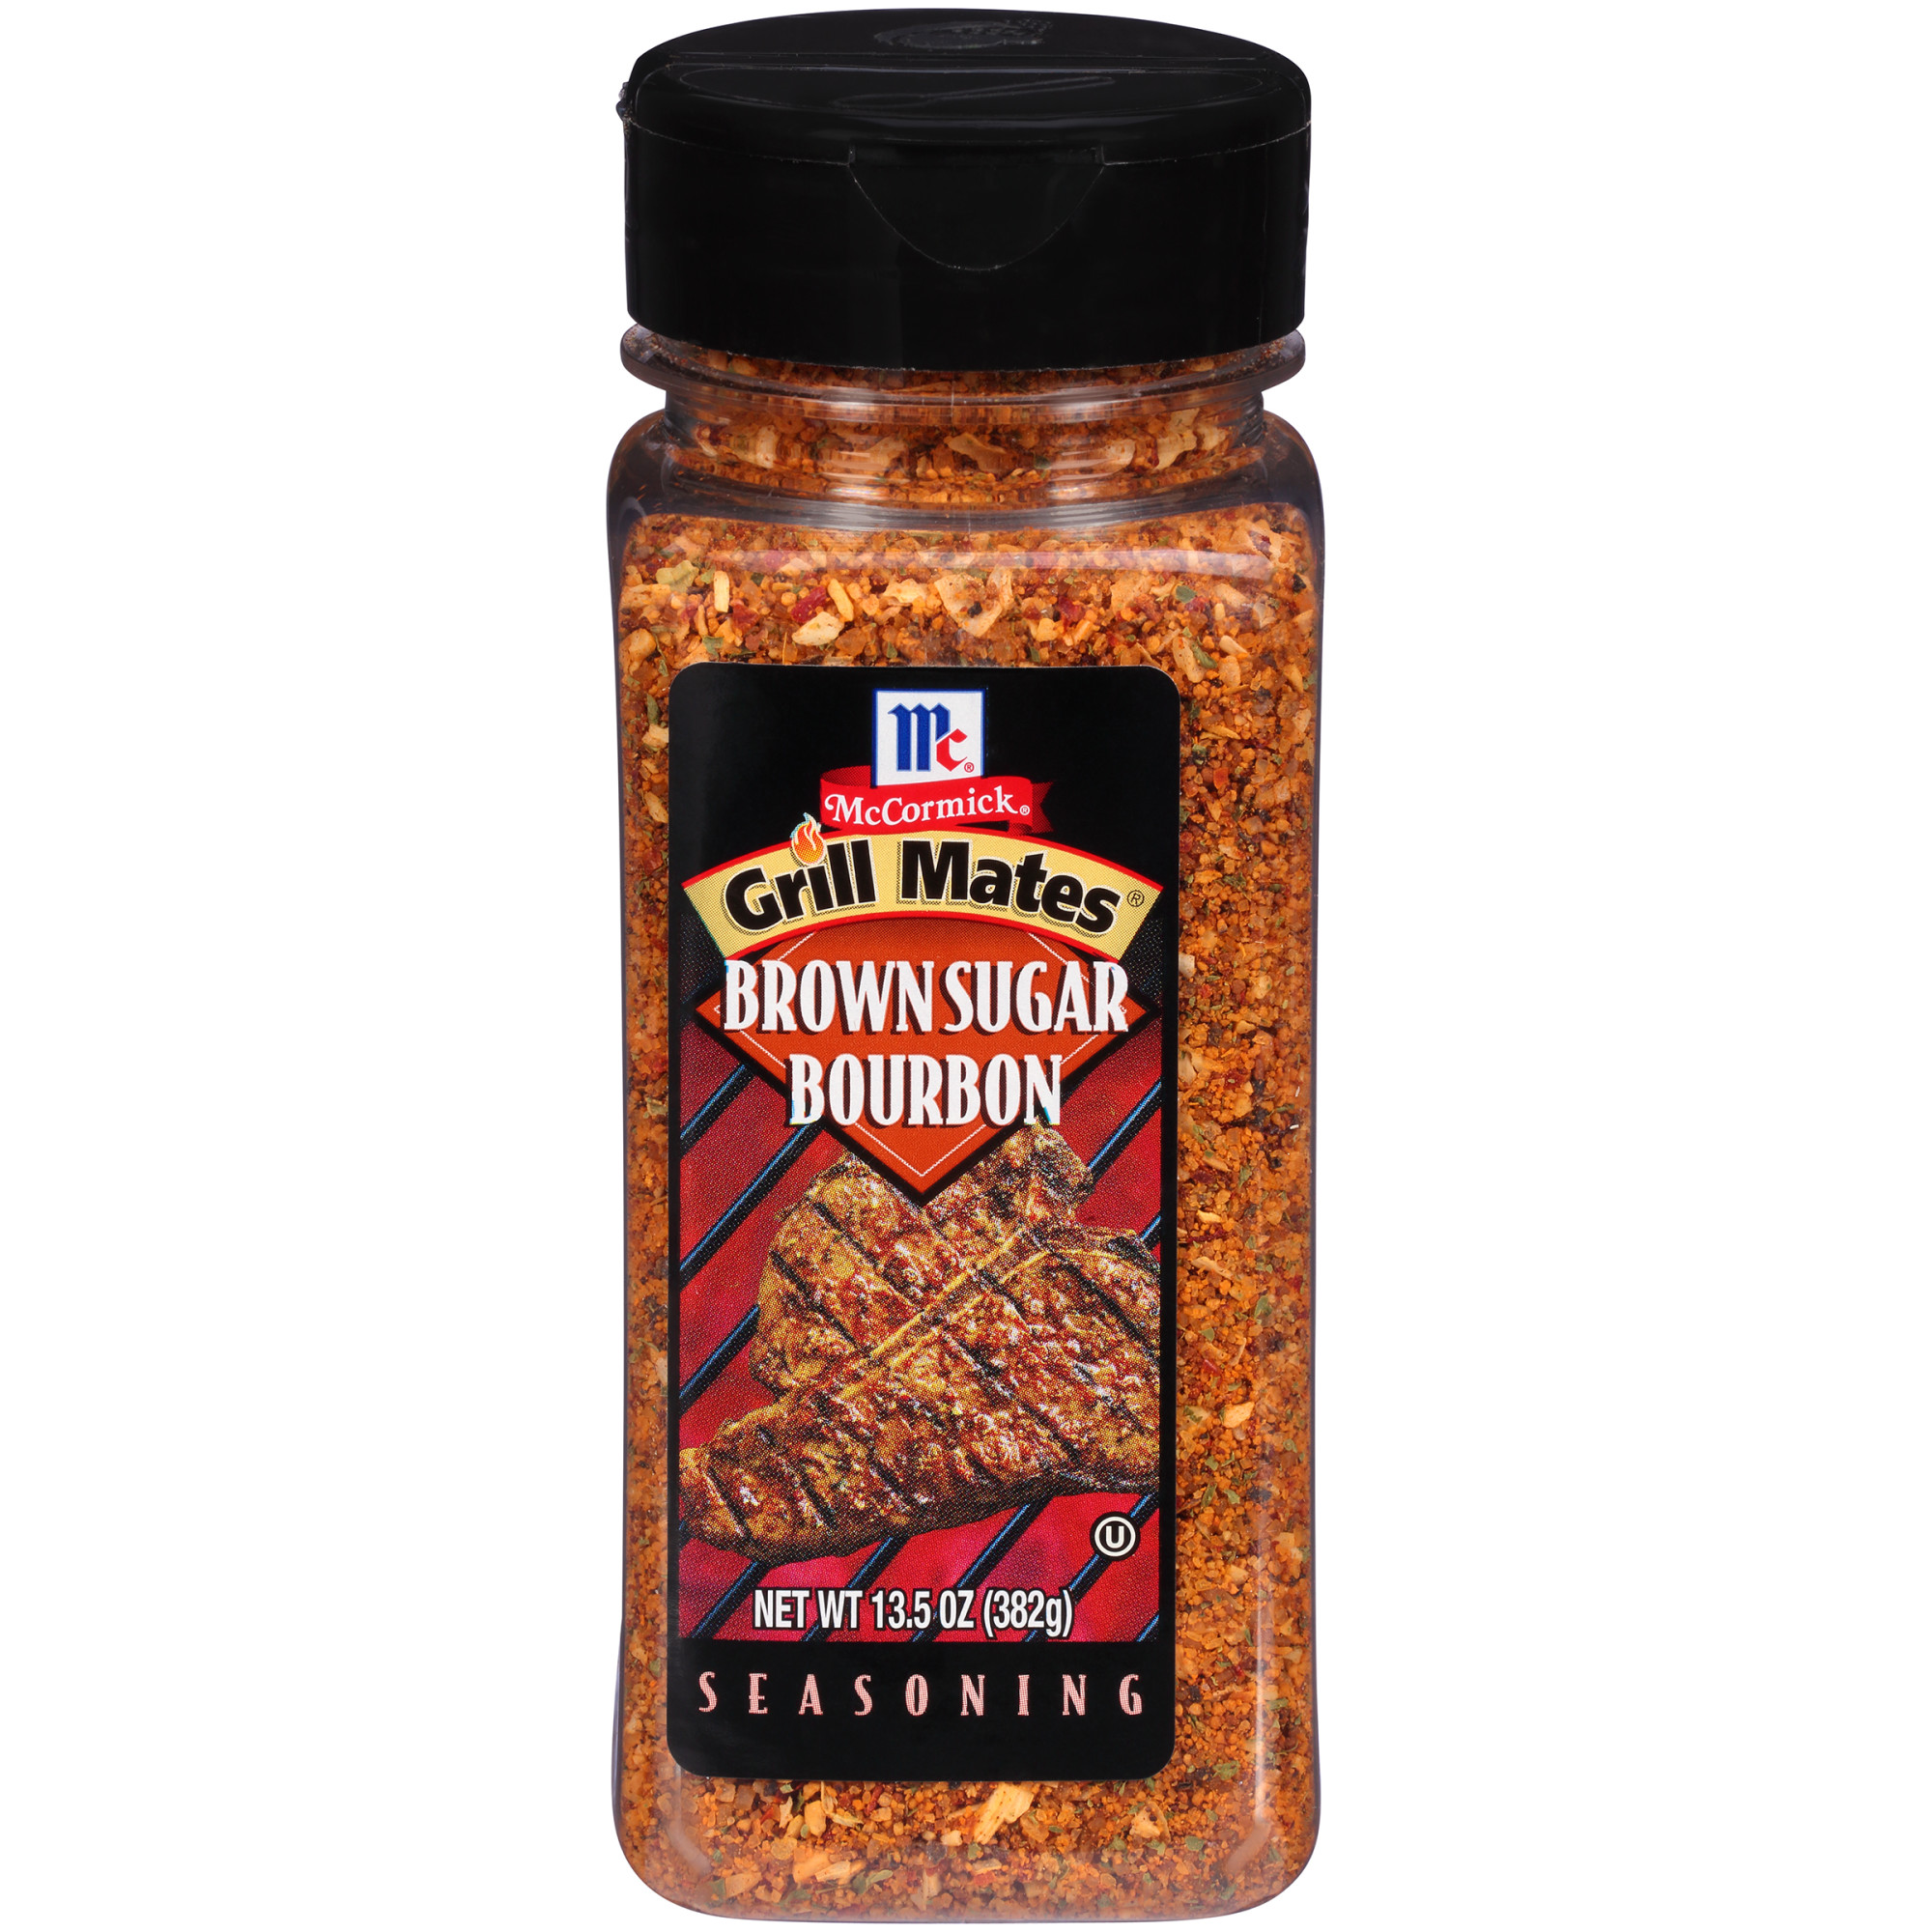 McCormick Grill Mates Brown Sugar Bourbon Seasoning, 13.5 oz